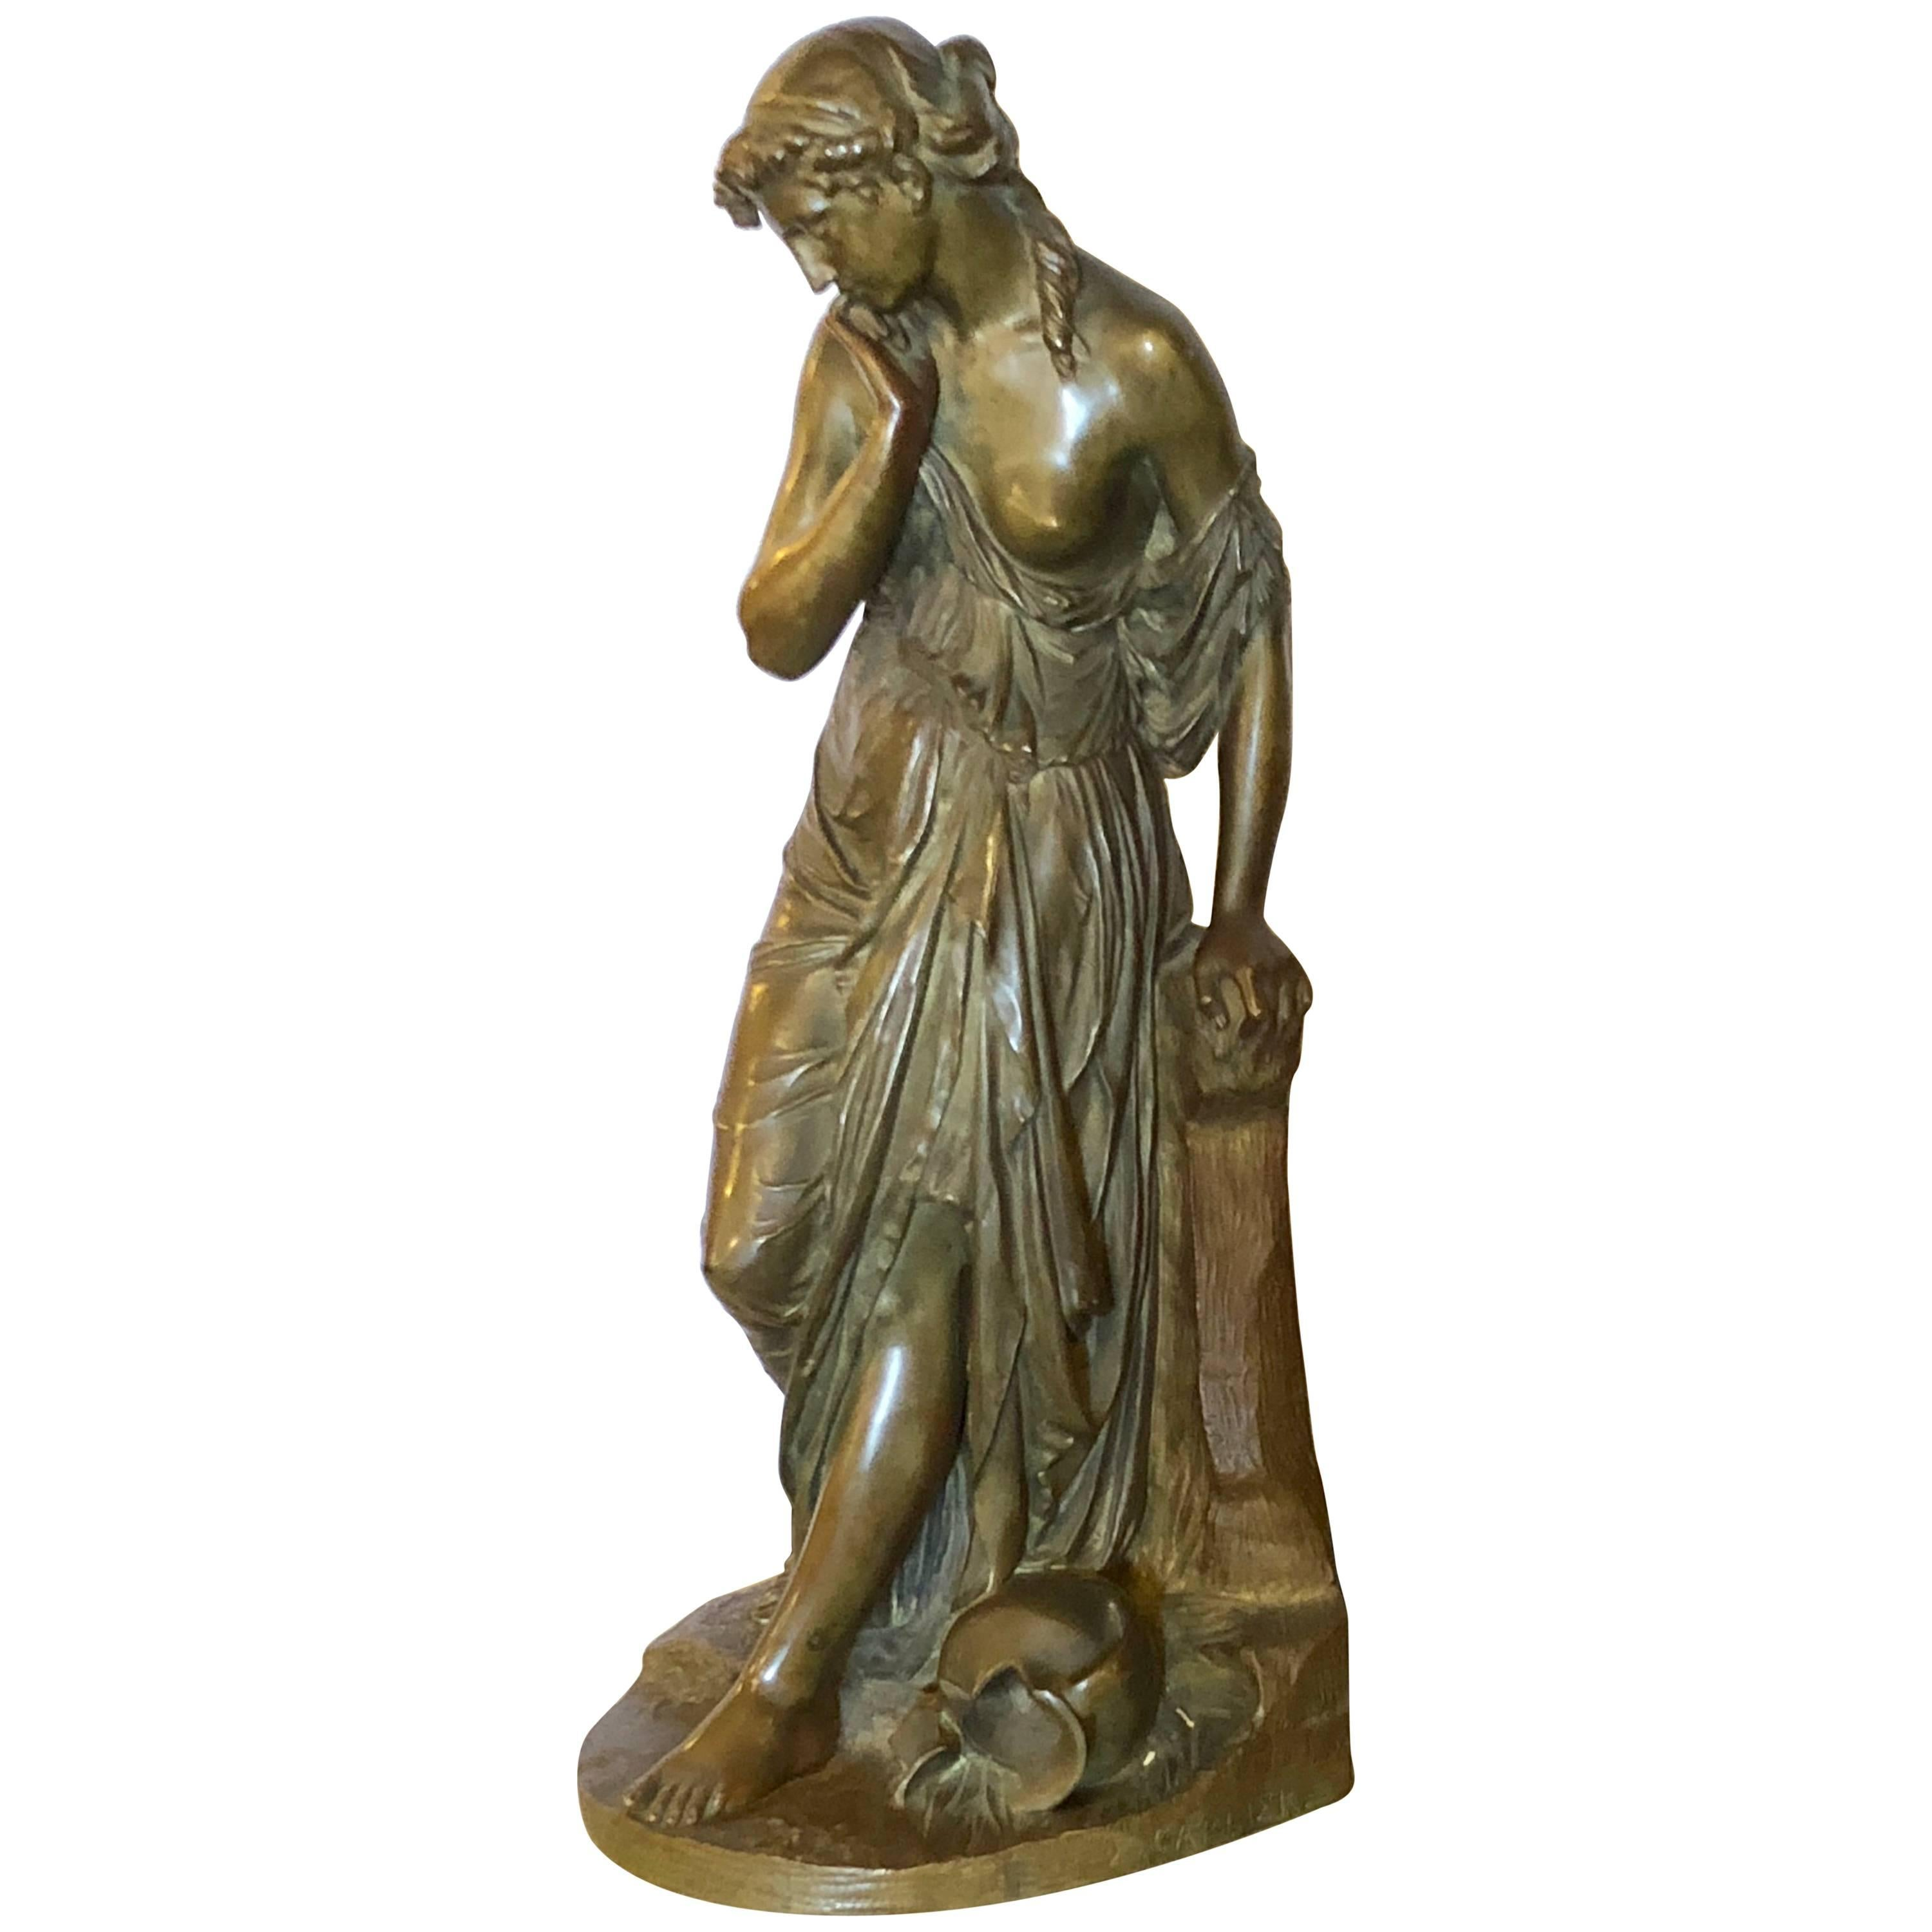 19th Century Bronze Sculpture of a Maiden in Neoclassical Form Signed E. Carlier